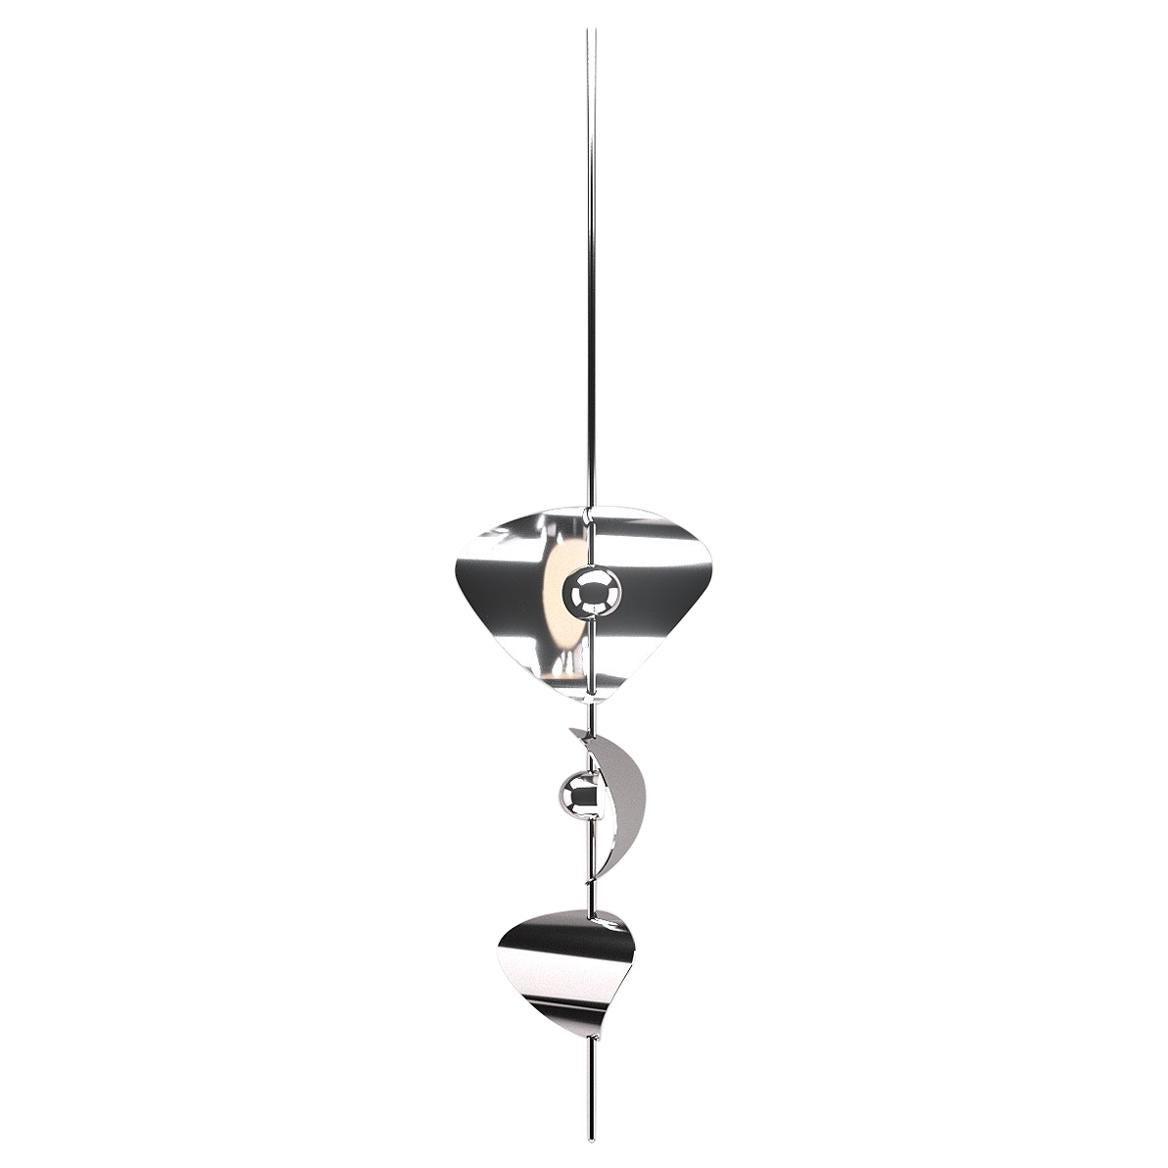 Bonnie Config 1 Contemporary LED Chandelier, Solid Brass or Chromed, Small, Art